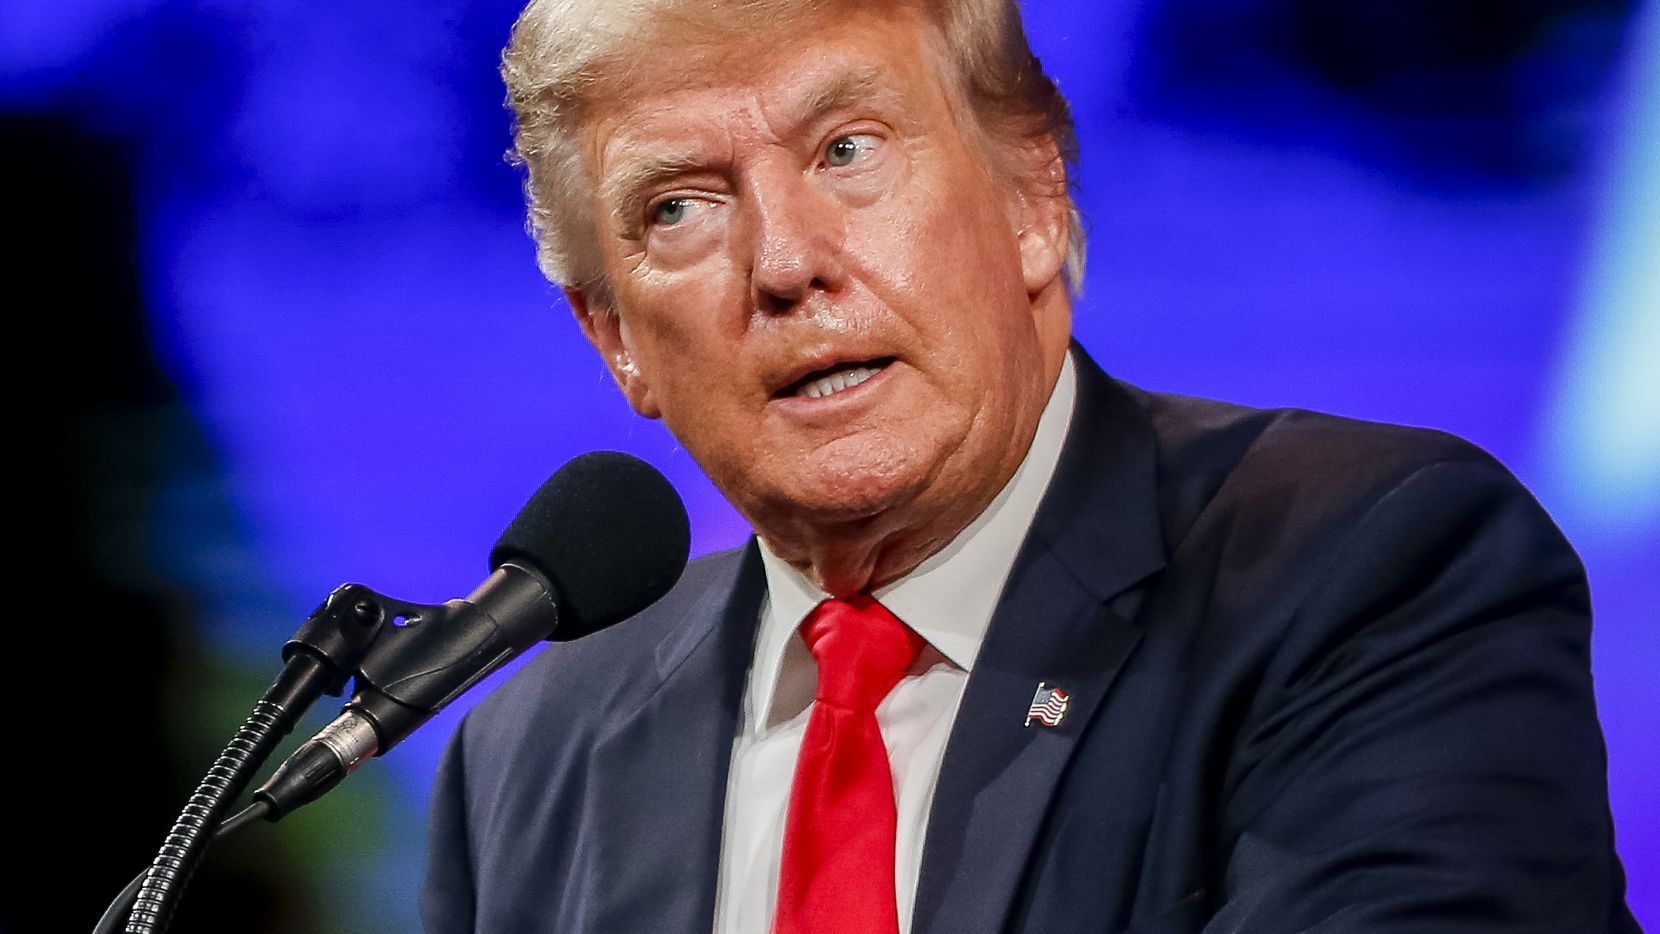 Judging from his sometimes-incendiary open letters and written statements, former President Donald Trump has acquired an intense interest in the Texas Legislature. A lot of people in Austin are wondering why – and who's behind it. In File Photo, Trump speaks at the Conservative Political Action Conference in Dallas in July.